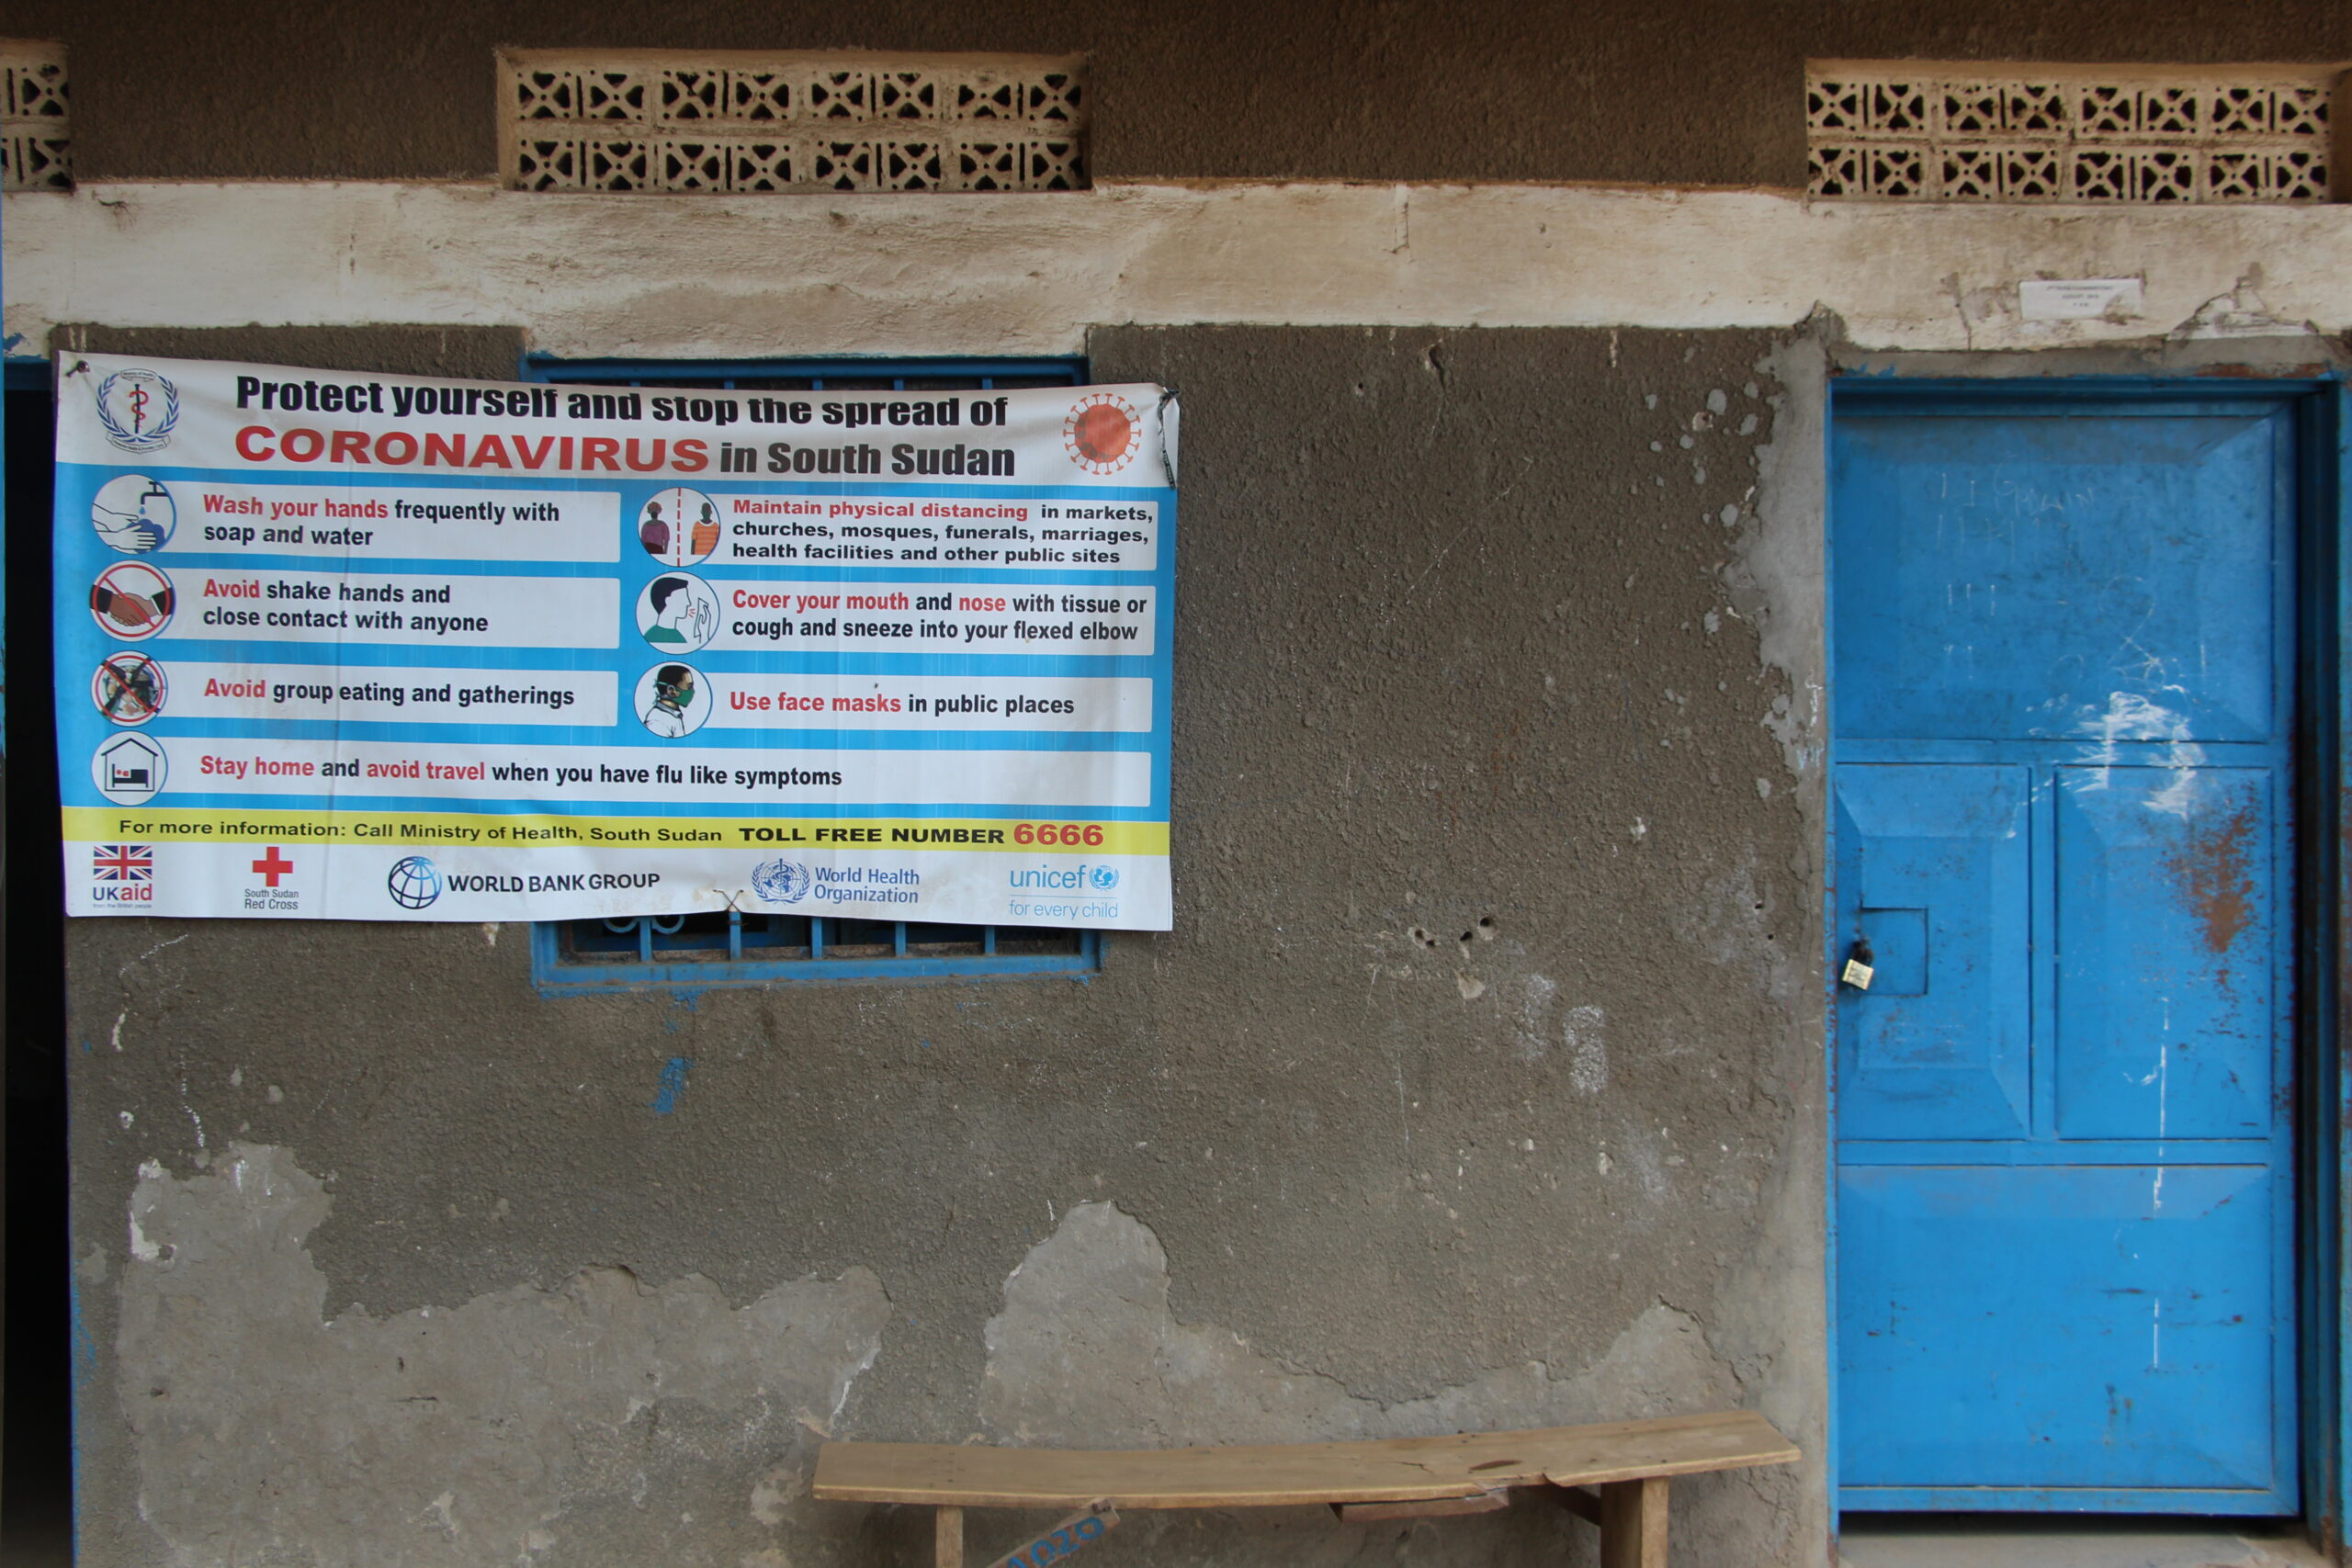 Outside one of the classrooms at Martyrs Memorial Secondary School in Juba